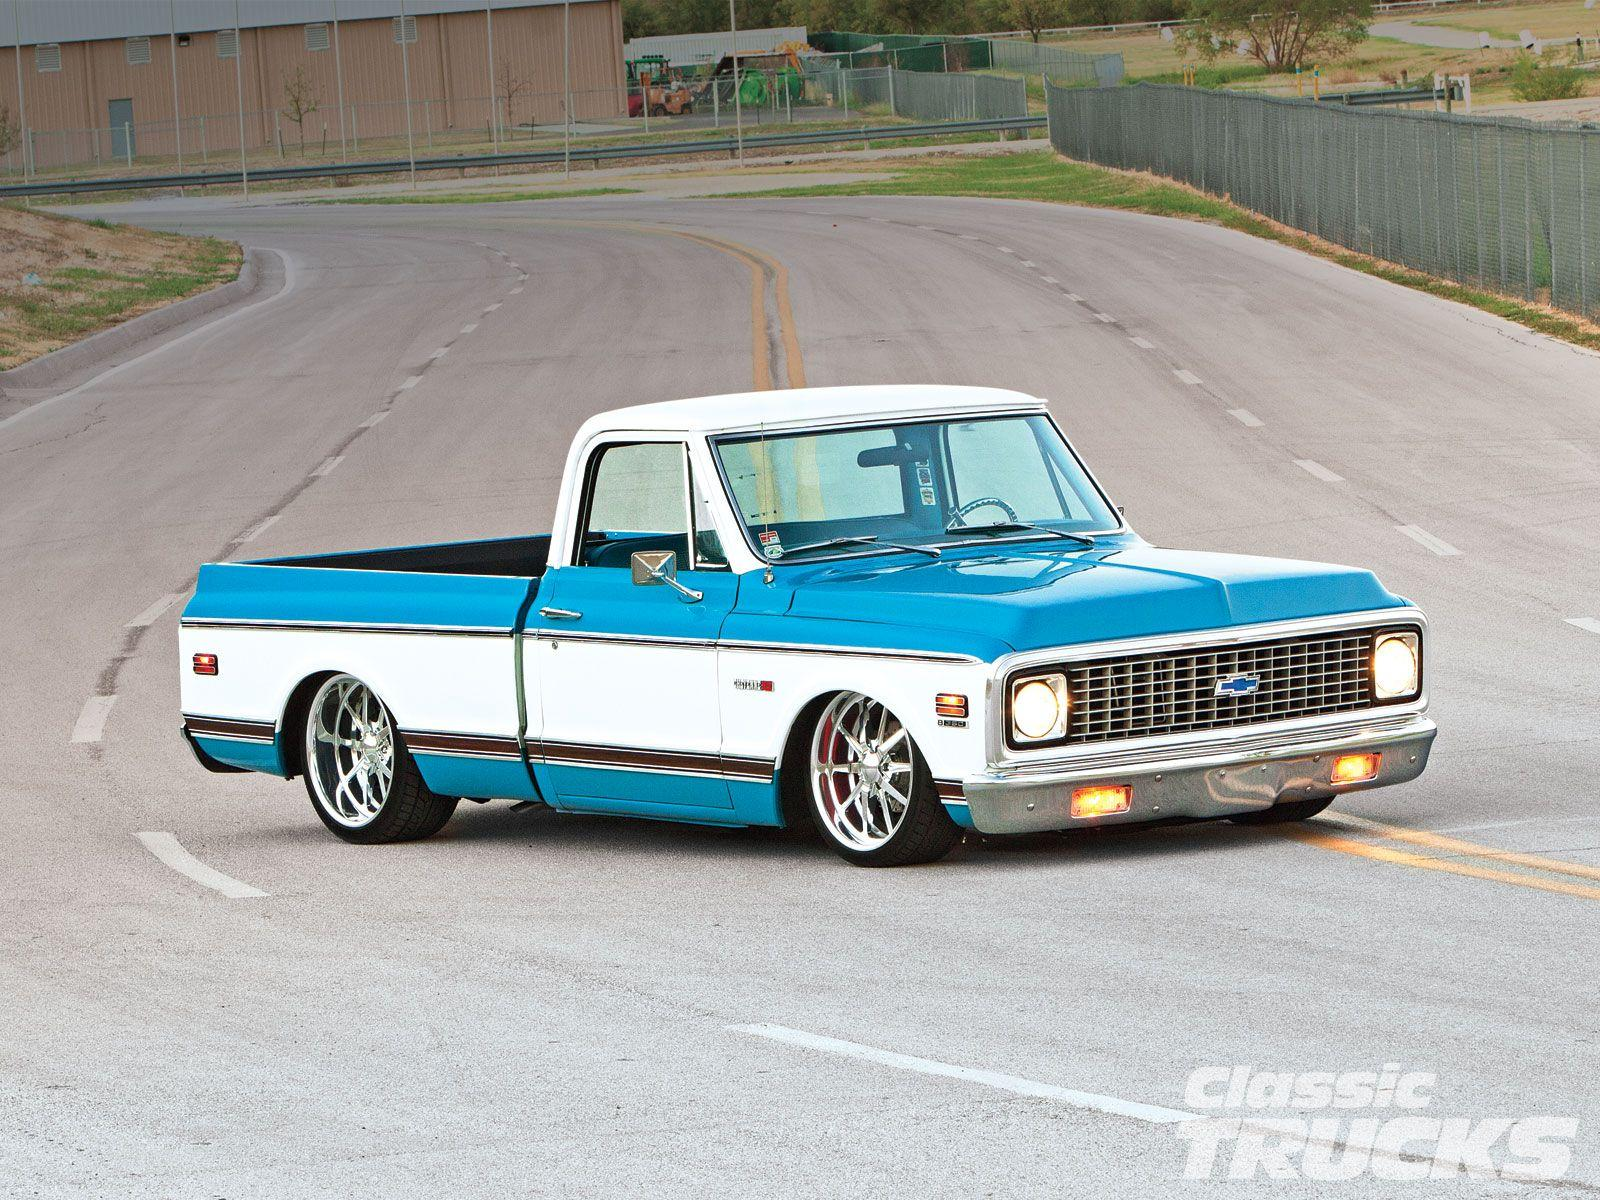 Chevy C10 Wallpapers - Wallpaper Cave